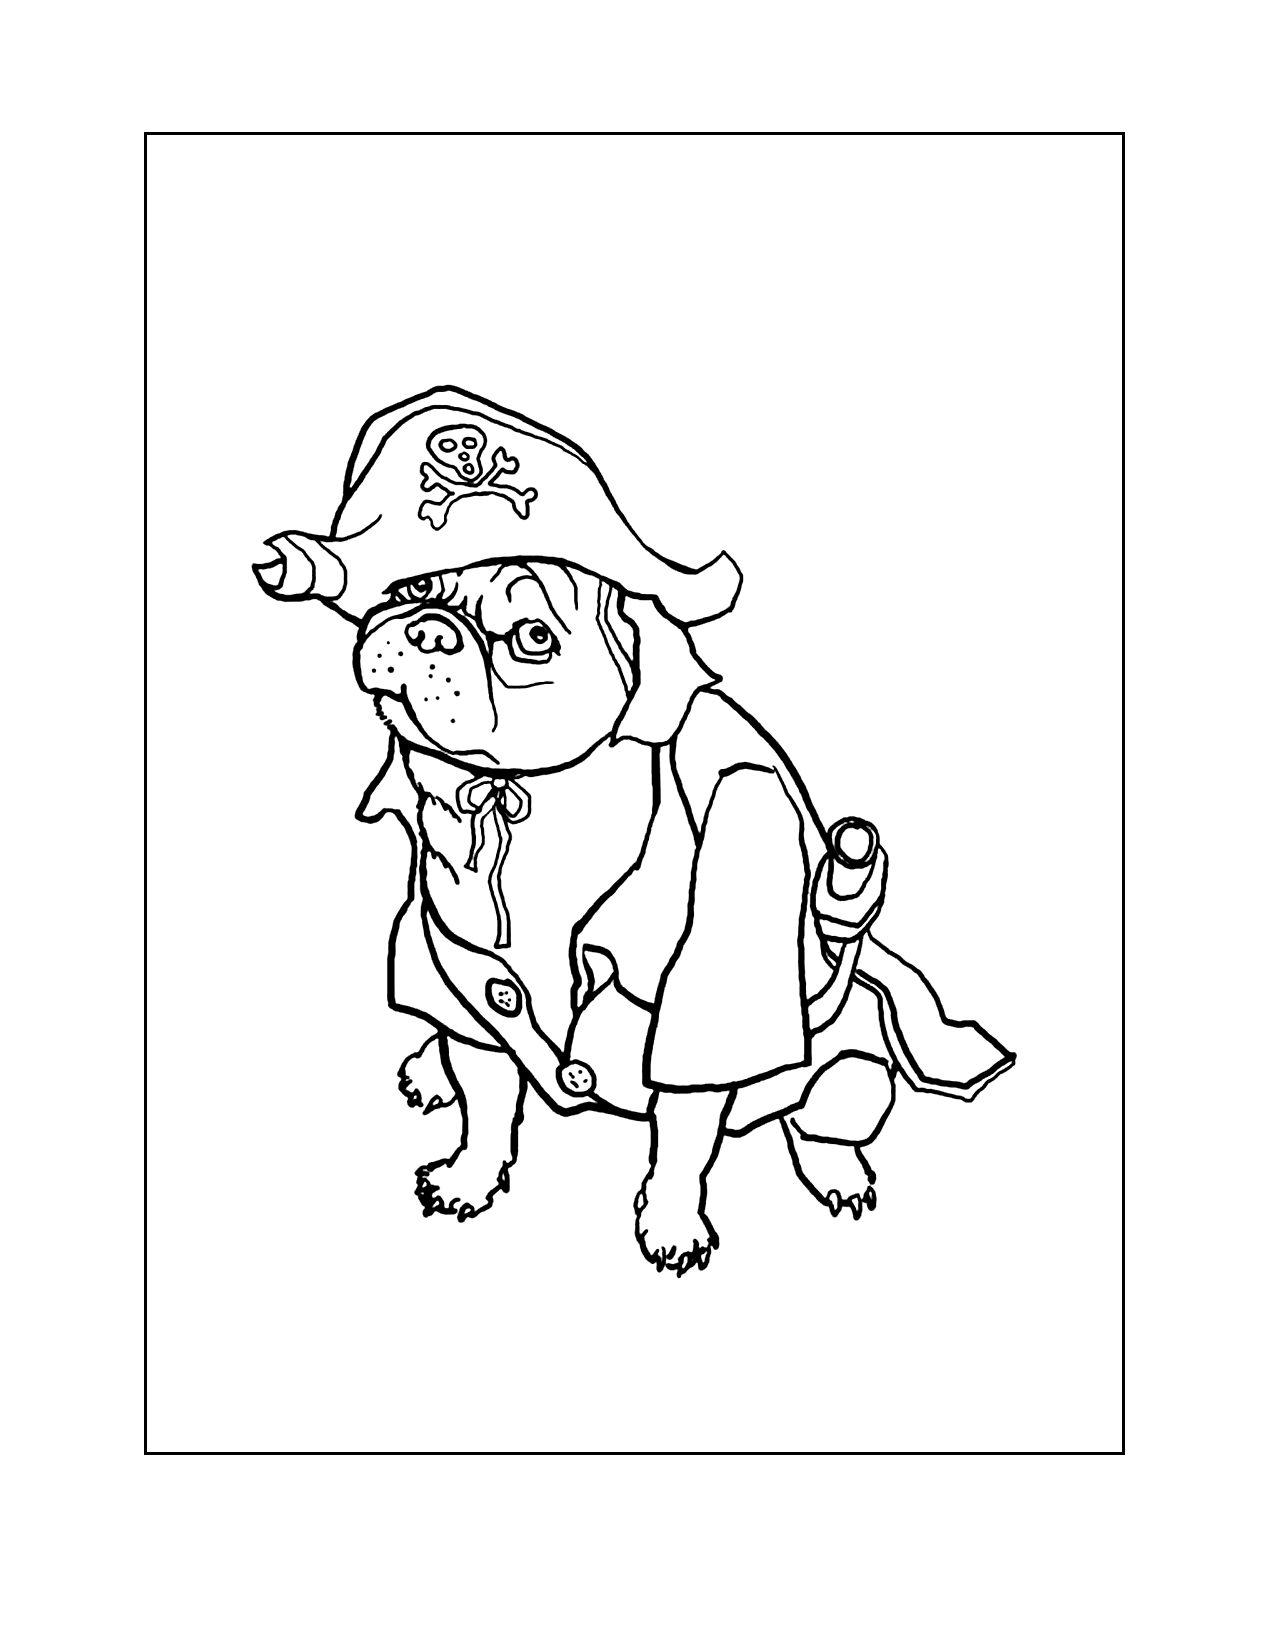 Pug In Pirate Costume Coloring Page